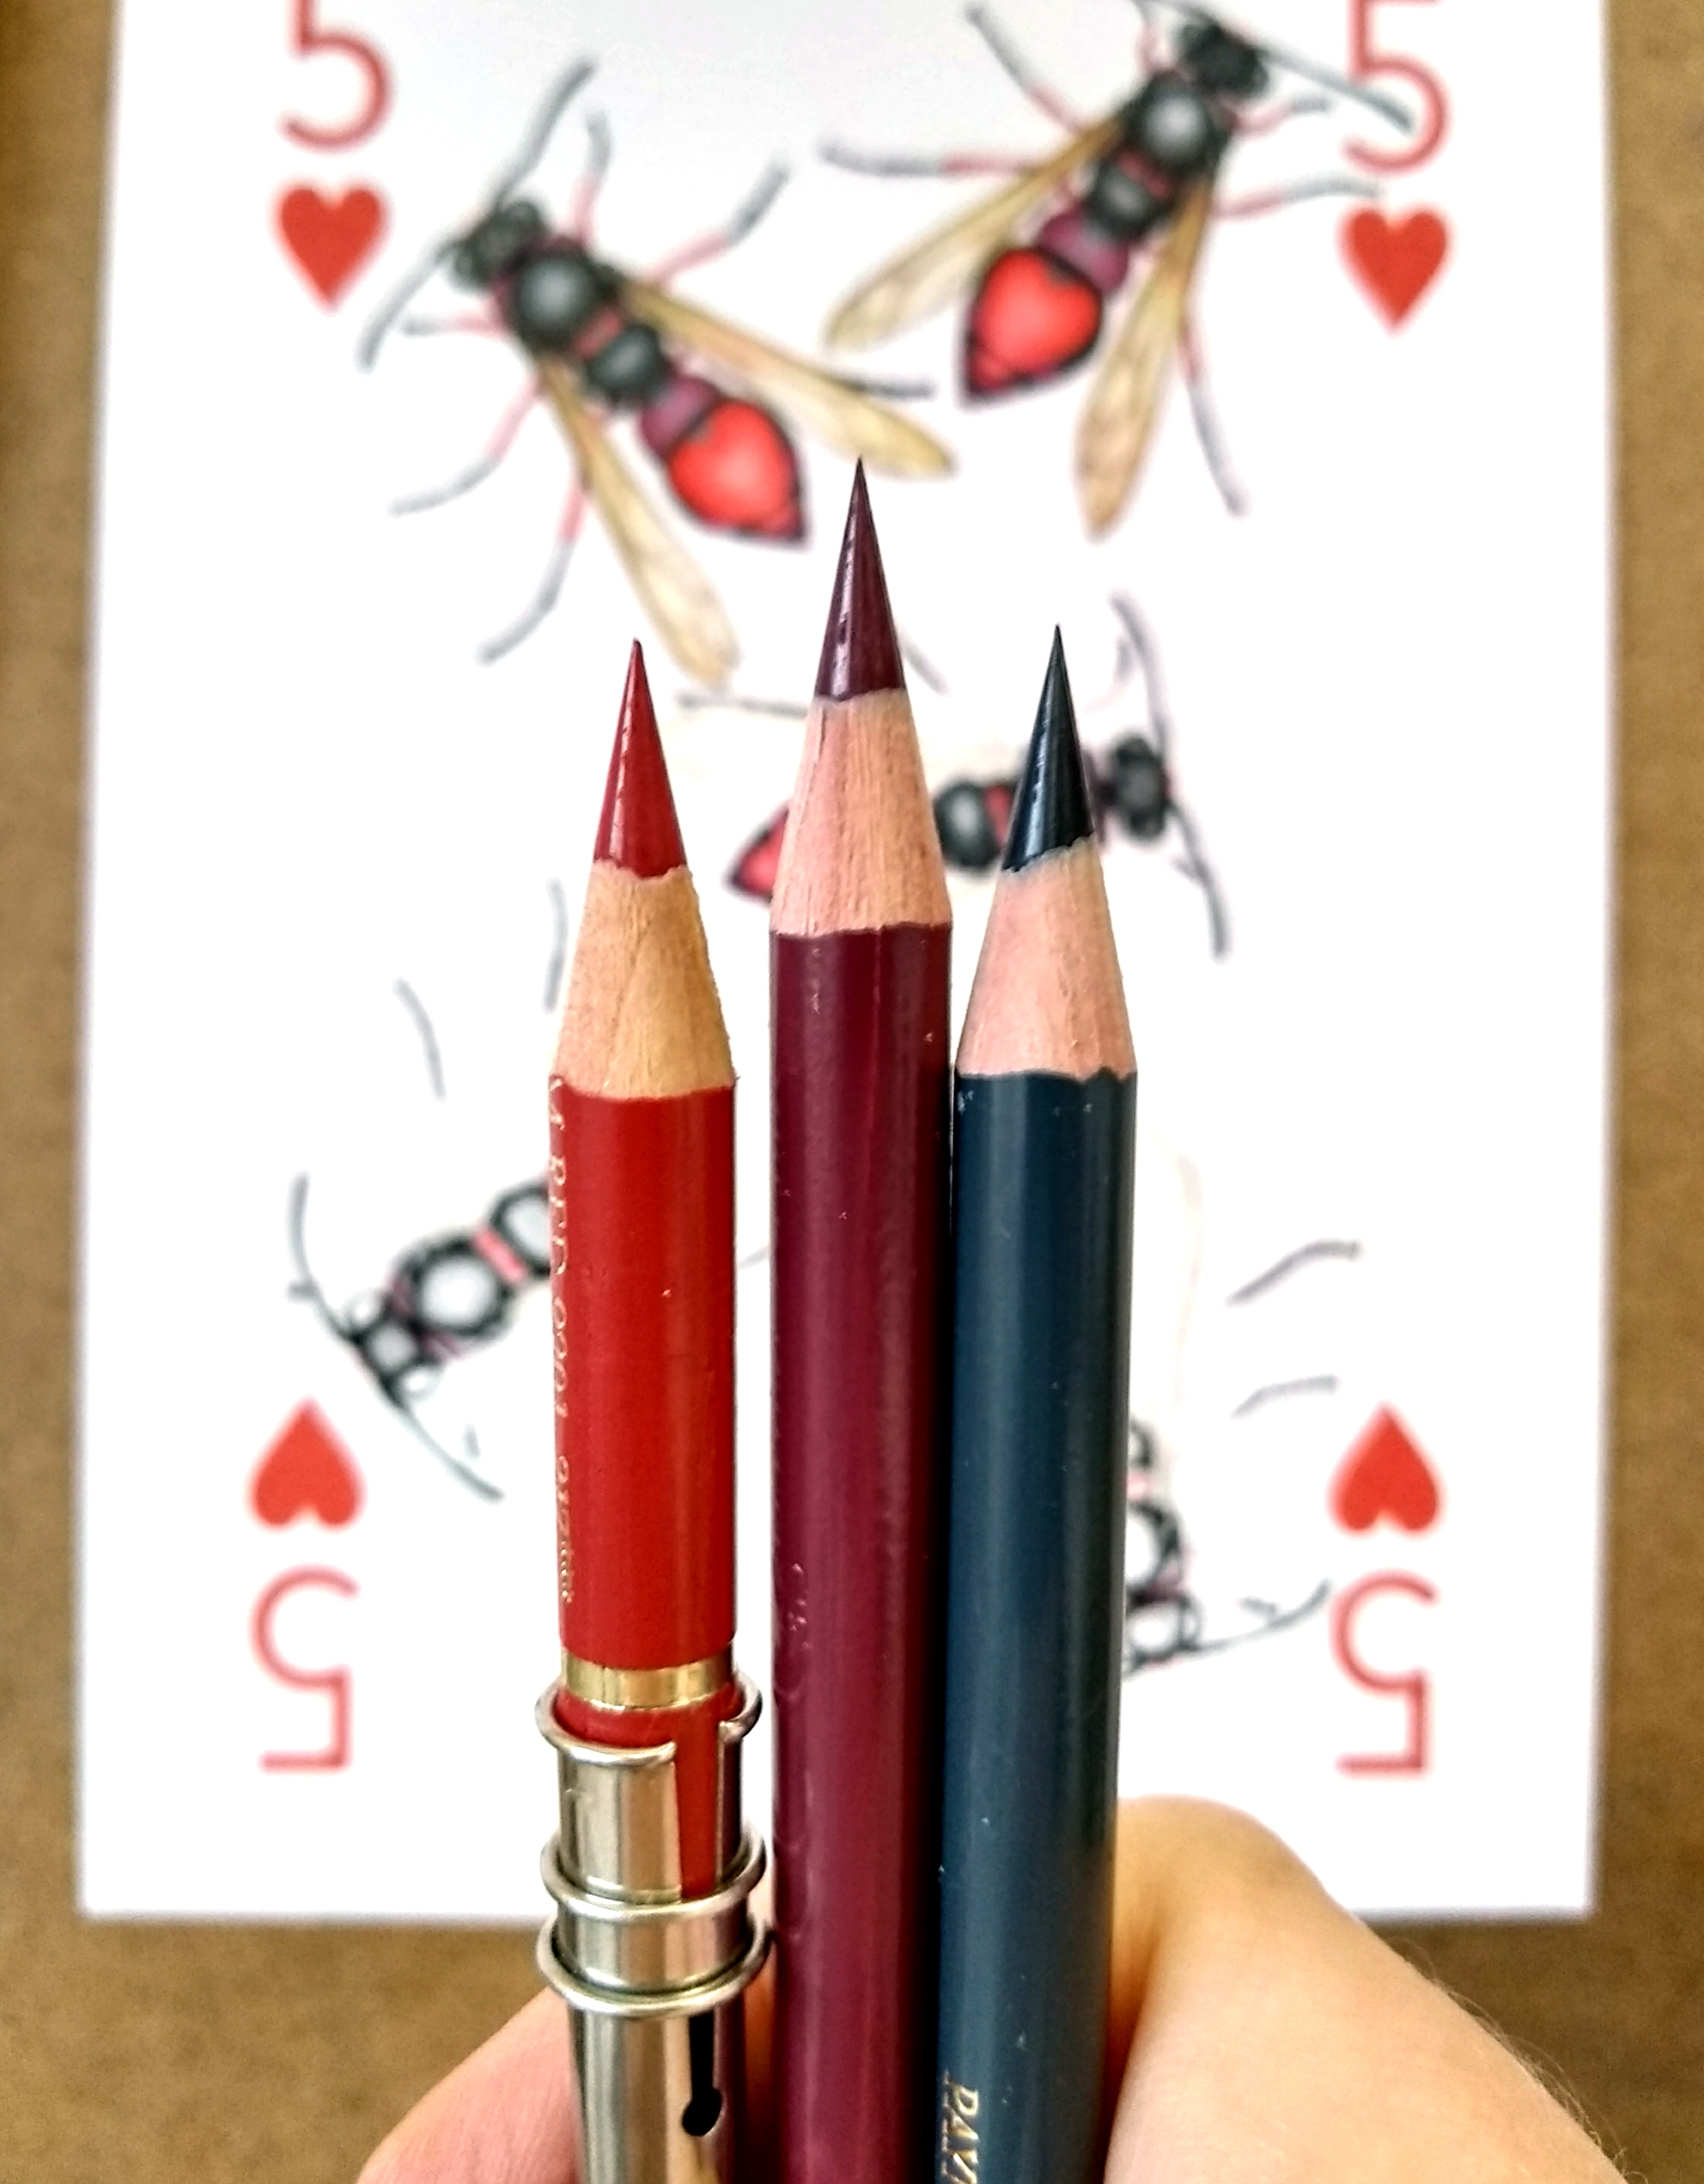 Image description; three very sharp pencils being held up in front of a drawing board.